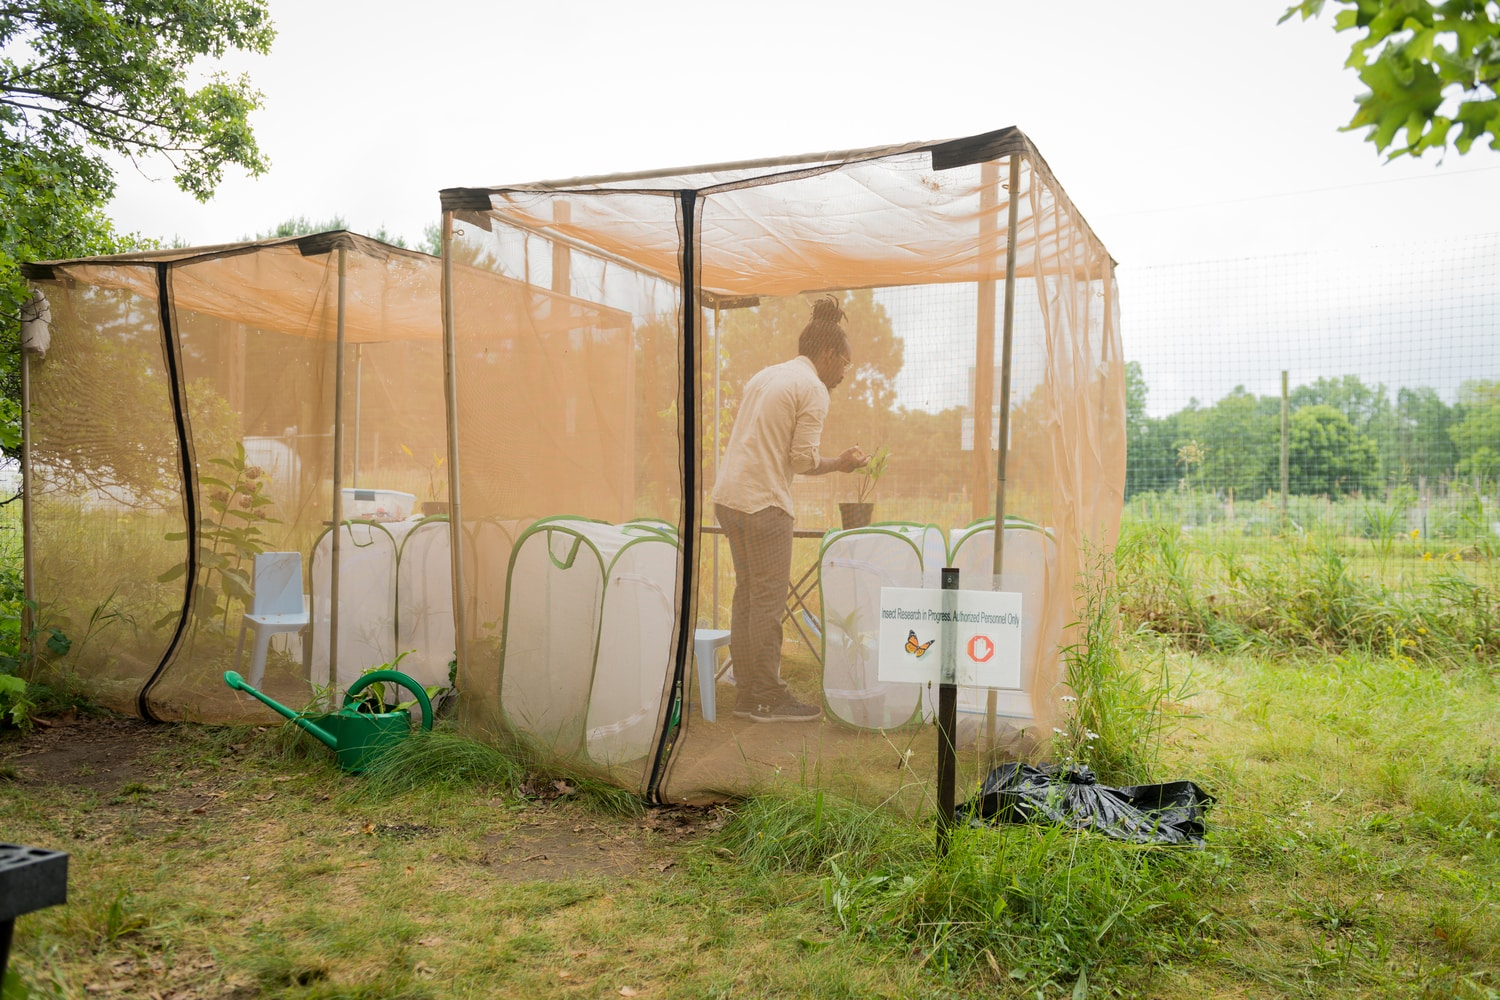 U-M biologist D. André Green works inside an outdoor insectary at the university's Matthaei Botanical Gardens in Ann Arbor. Image credit: Daryl Marshke, Michigan Photography